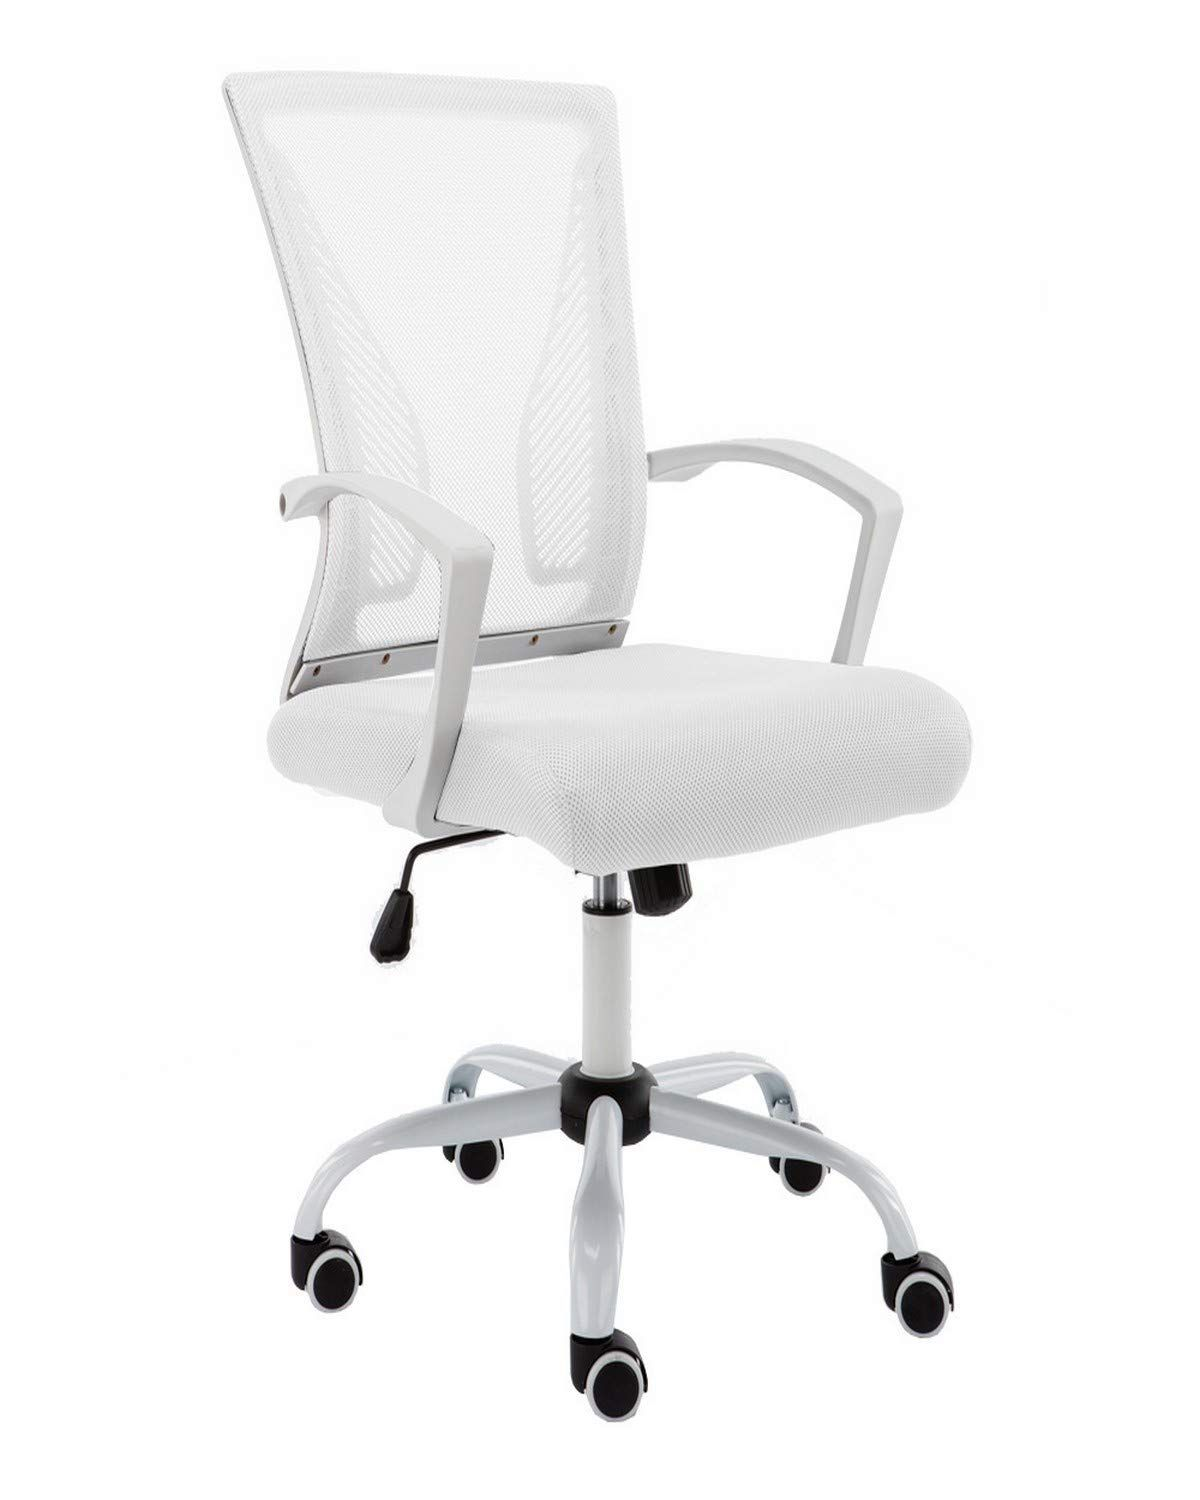 Modern Home Whwhite Zuna Mid Back Office Chair White White In